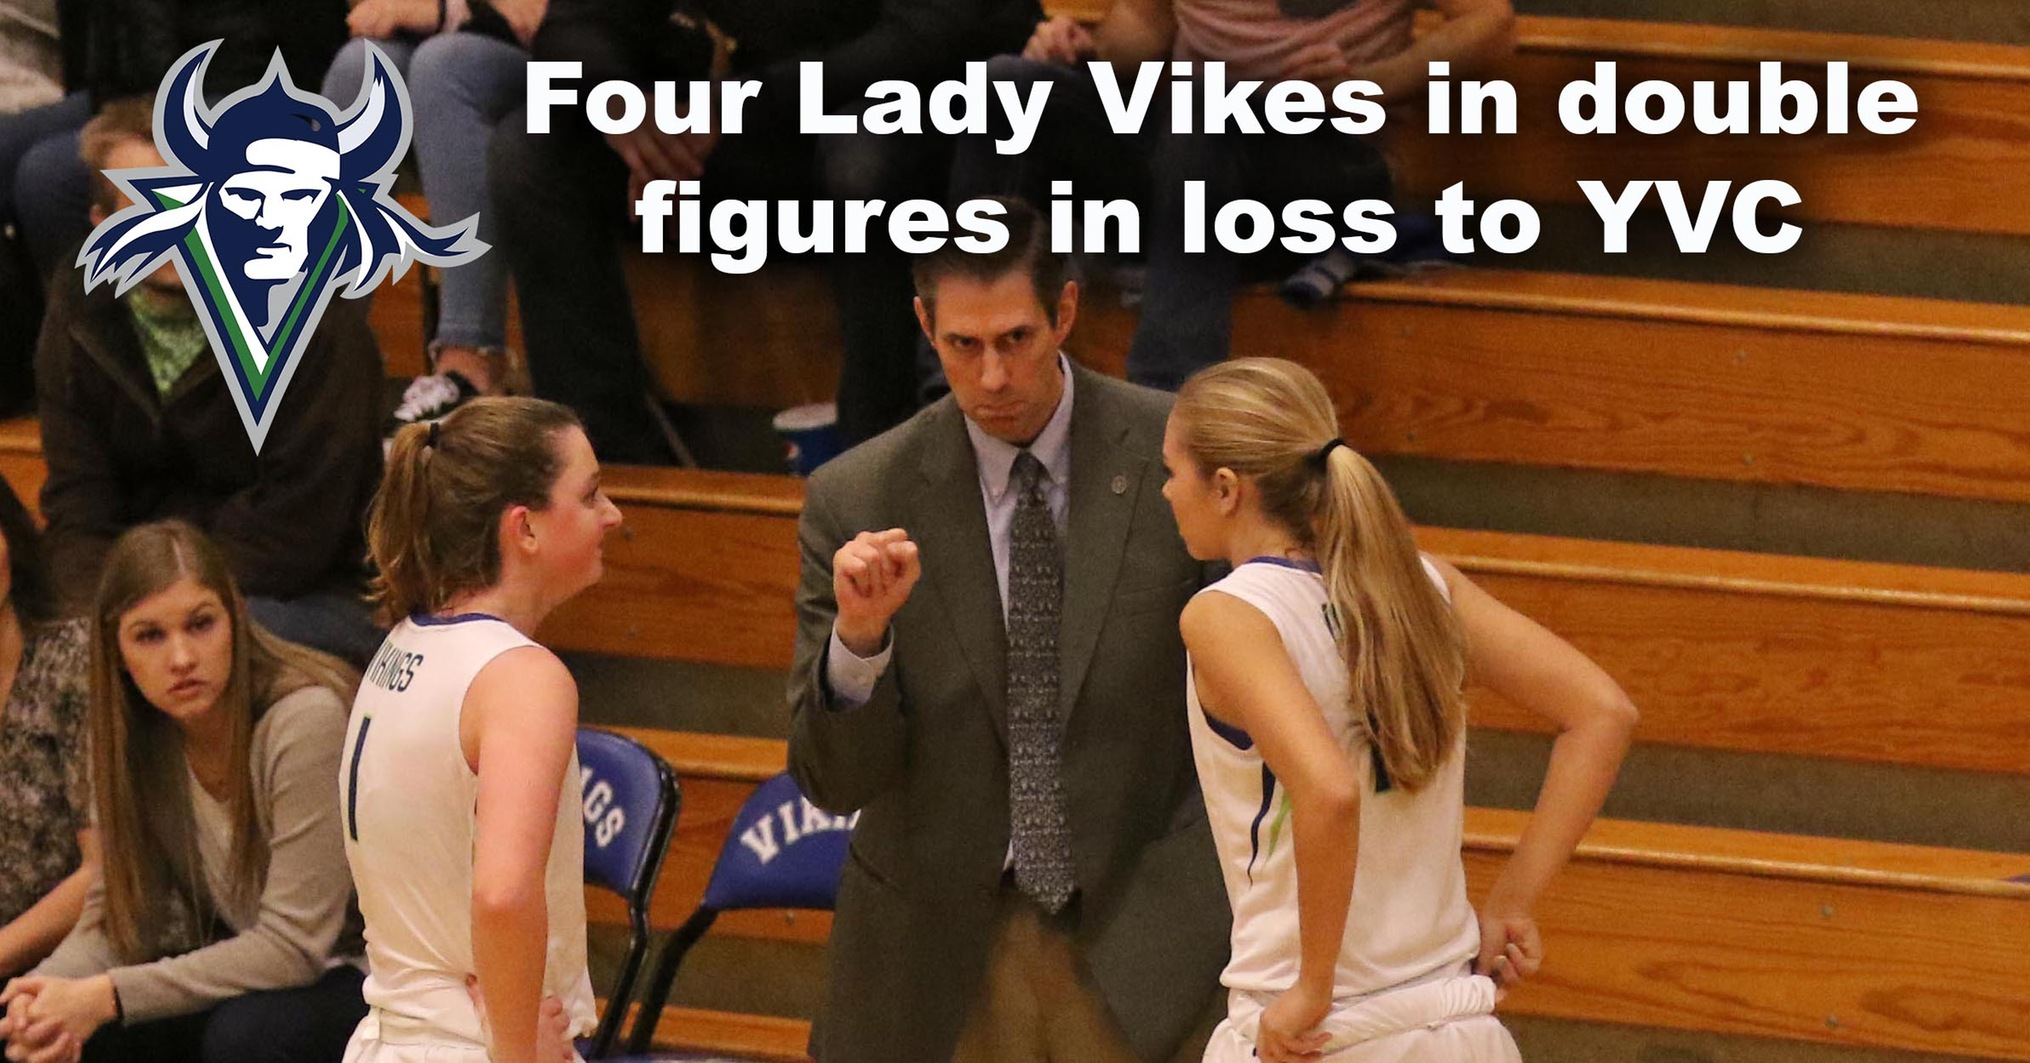 Lady Vikings Head Coach Preston Wilks talks to his players during a break in the action.